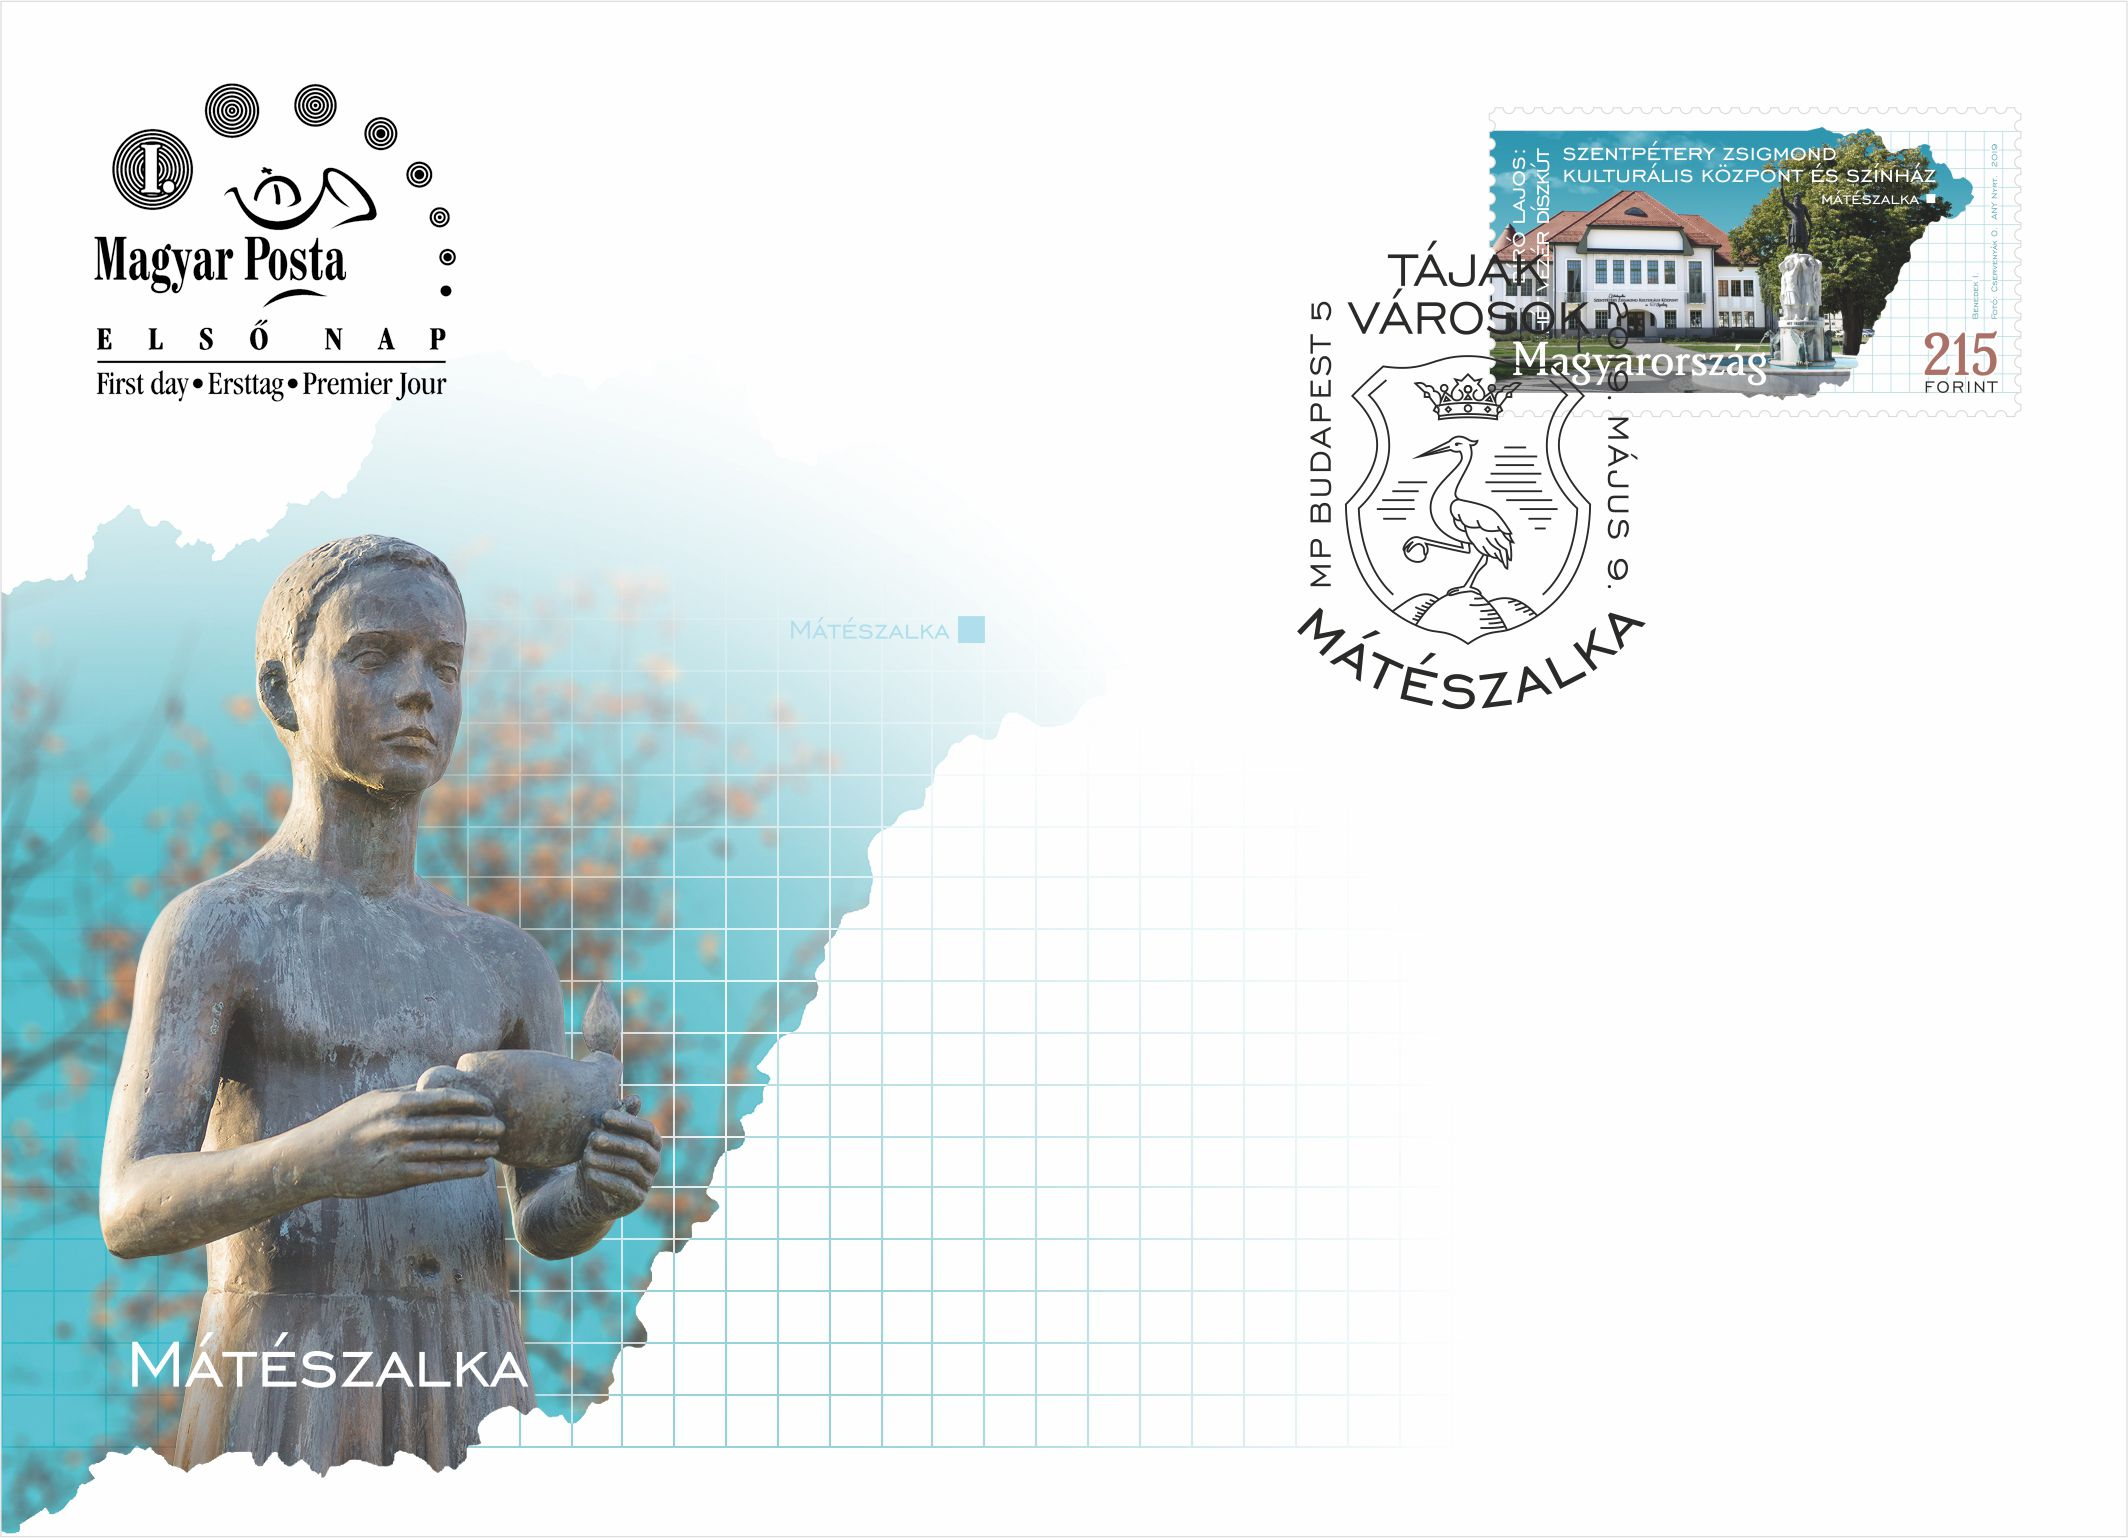 Regions and towns II: Mátészalka FDC